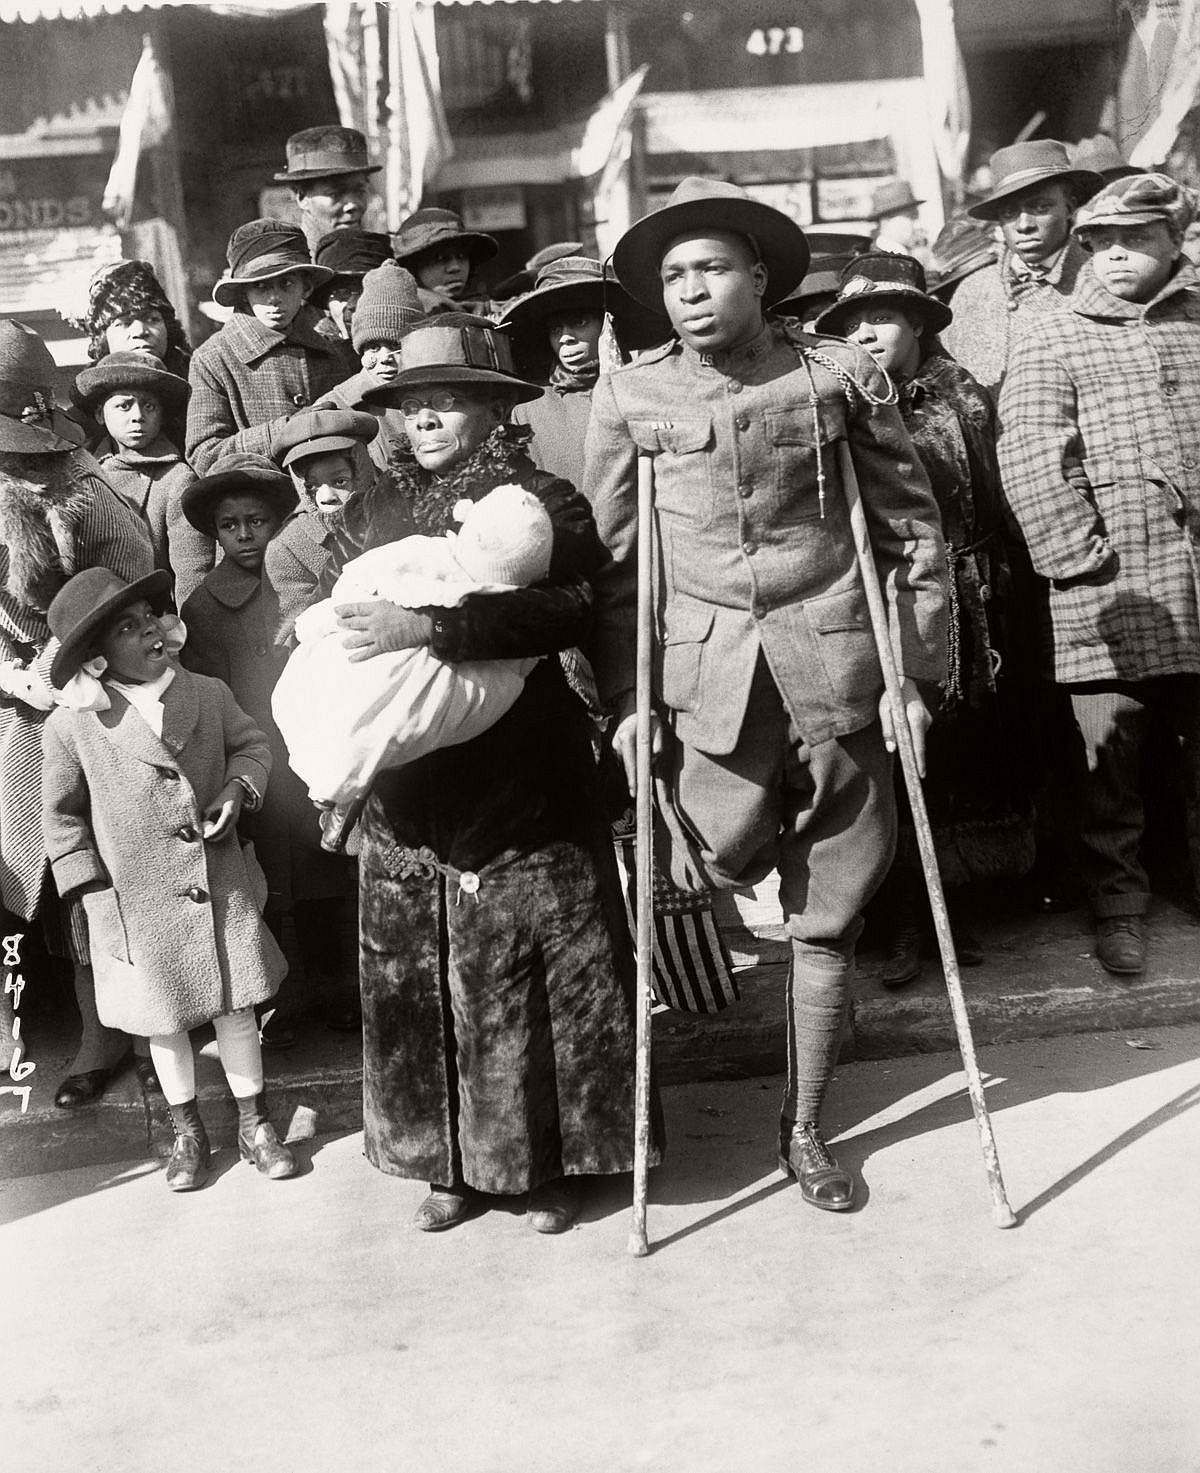 A wounded veteran watches the victory parade of the 369th. Feb. 17, 1919. (Bettmann/Corbis)